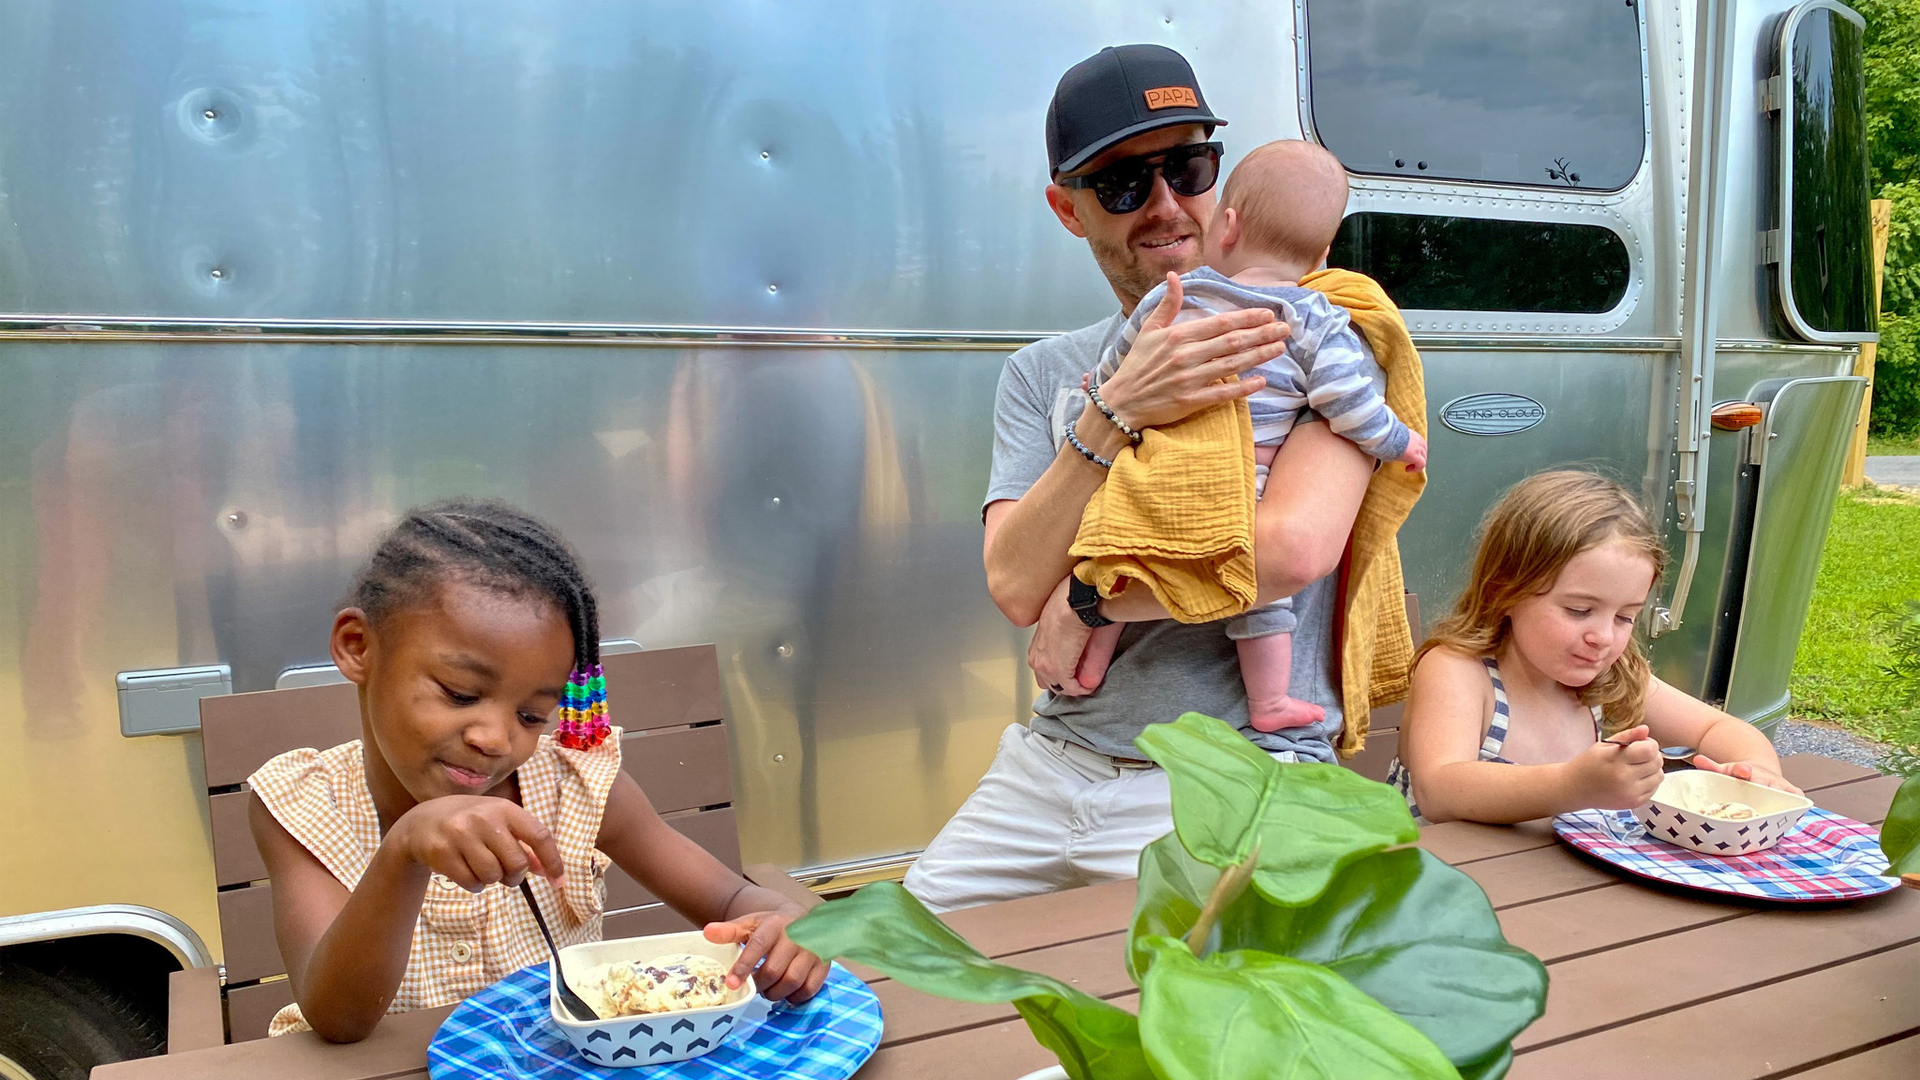 Jonathan and Thomas's Kids sitting at a table outside by their Airstream Travel Trailer